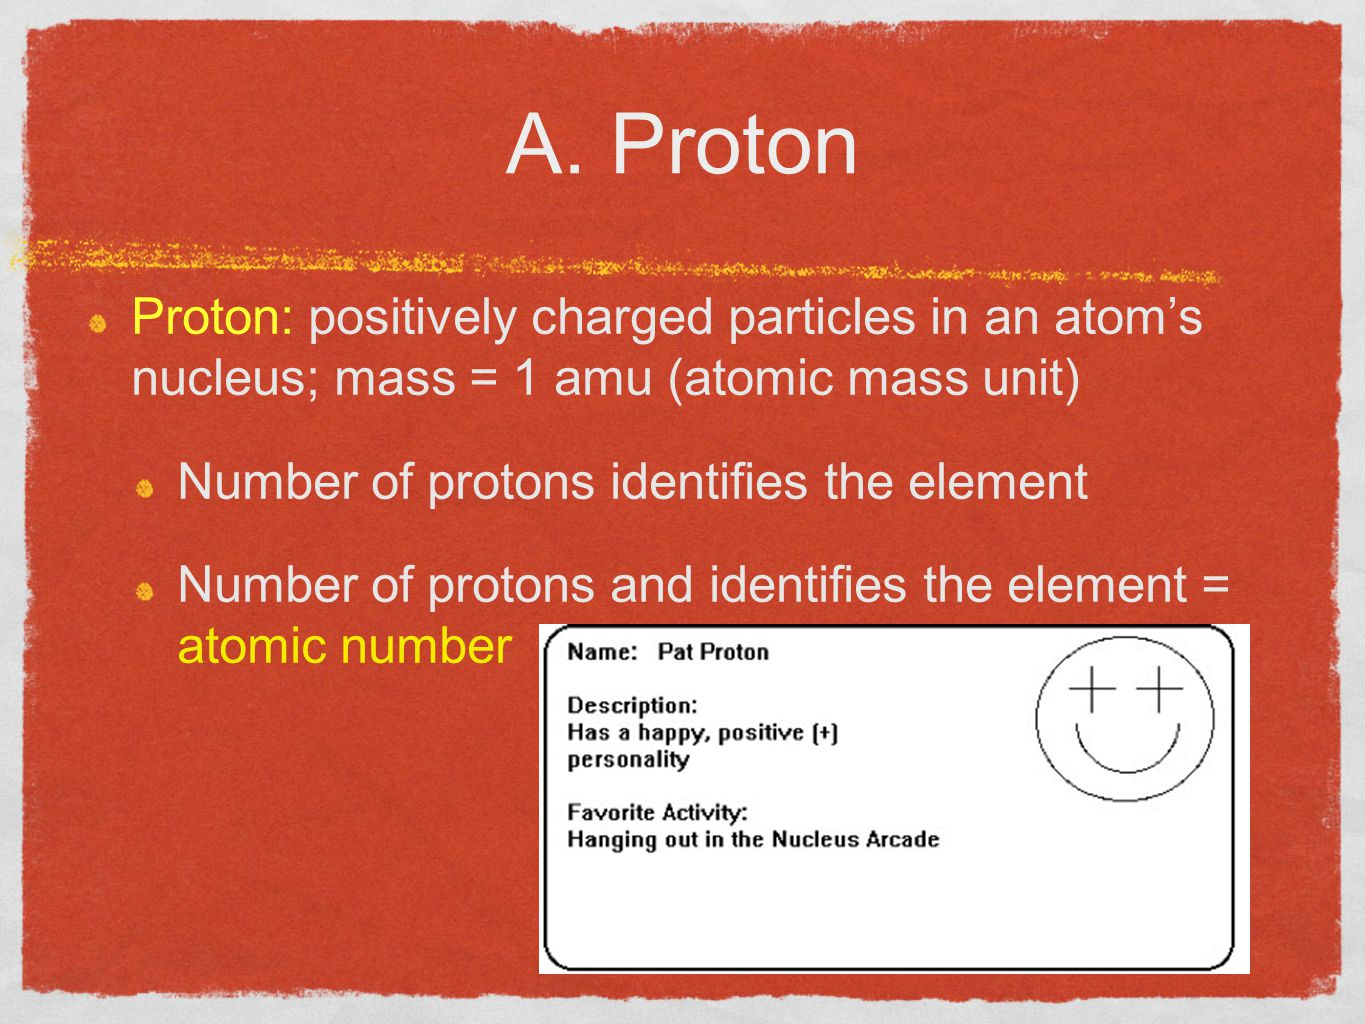 A. Proton Proton: positively charged particles in an atom's nucleus; mass = 1 amu (atomic mass unit)